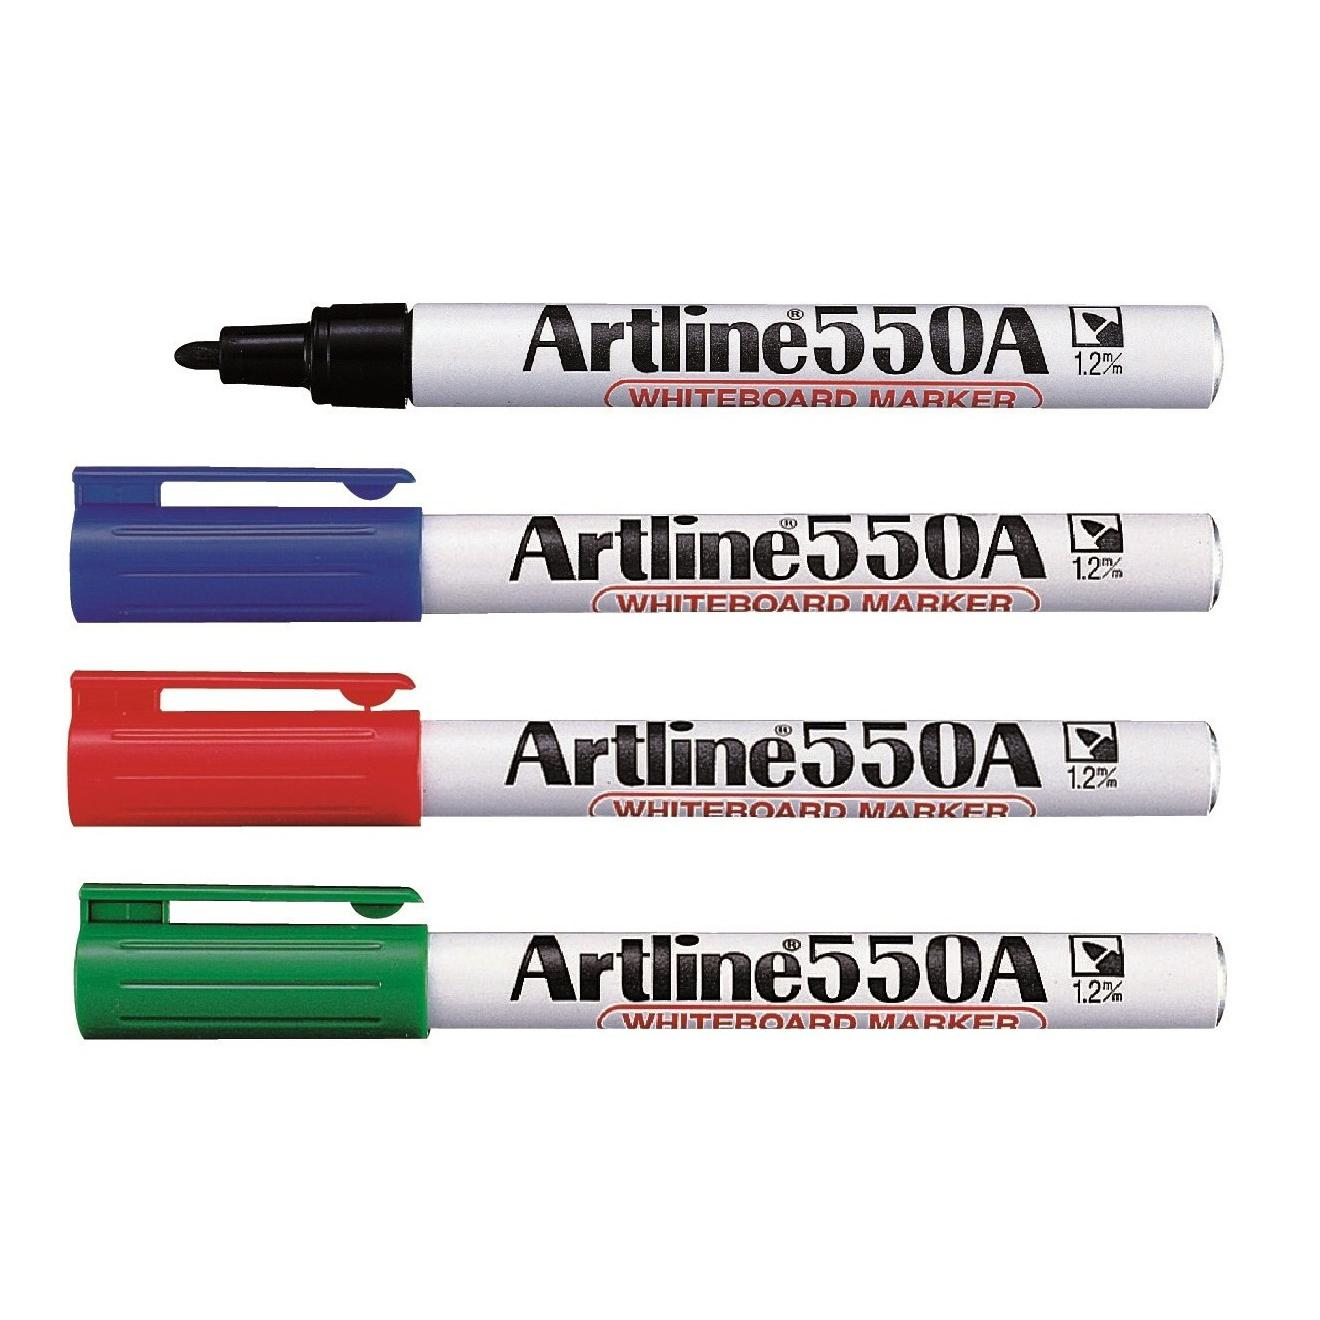 Artline 550A Whiteboard Marker 1.2mm